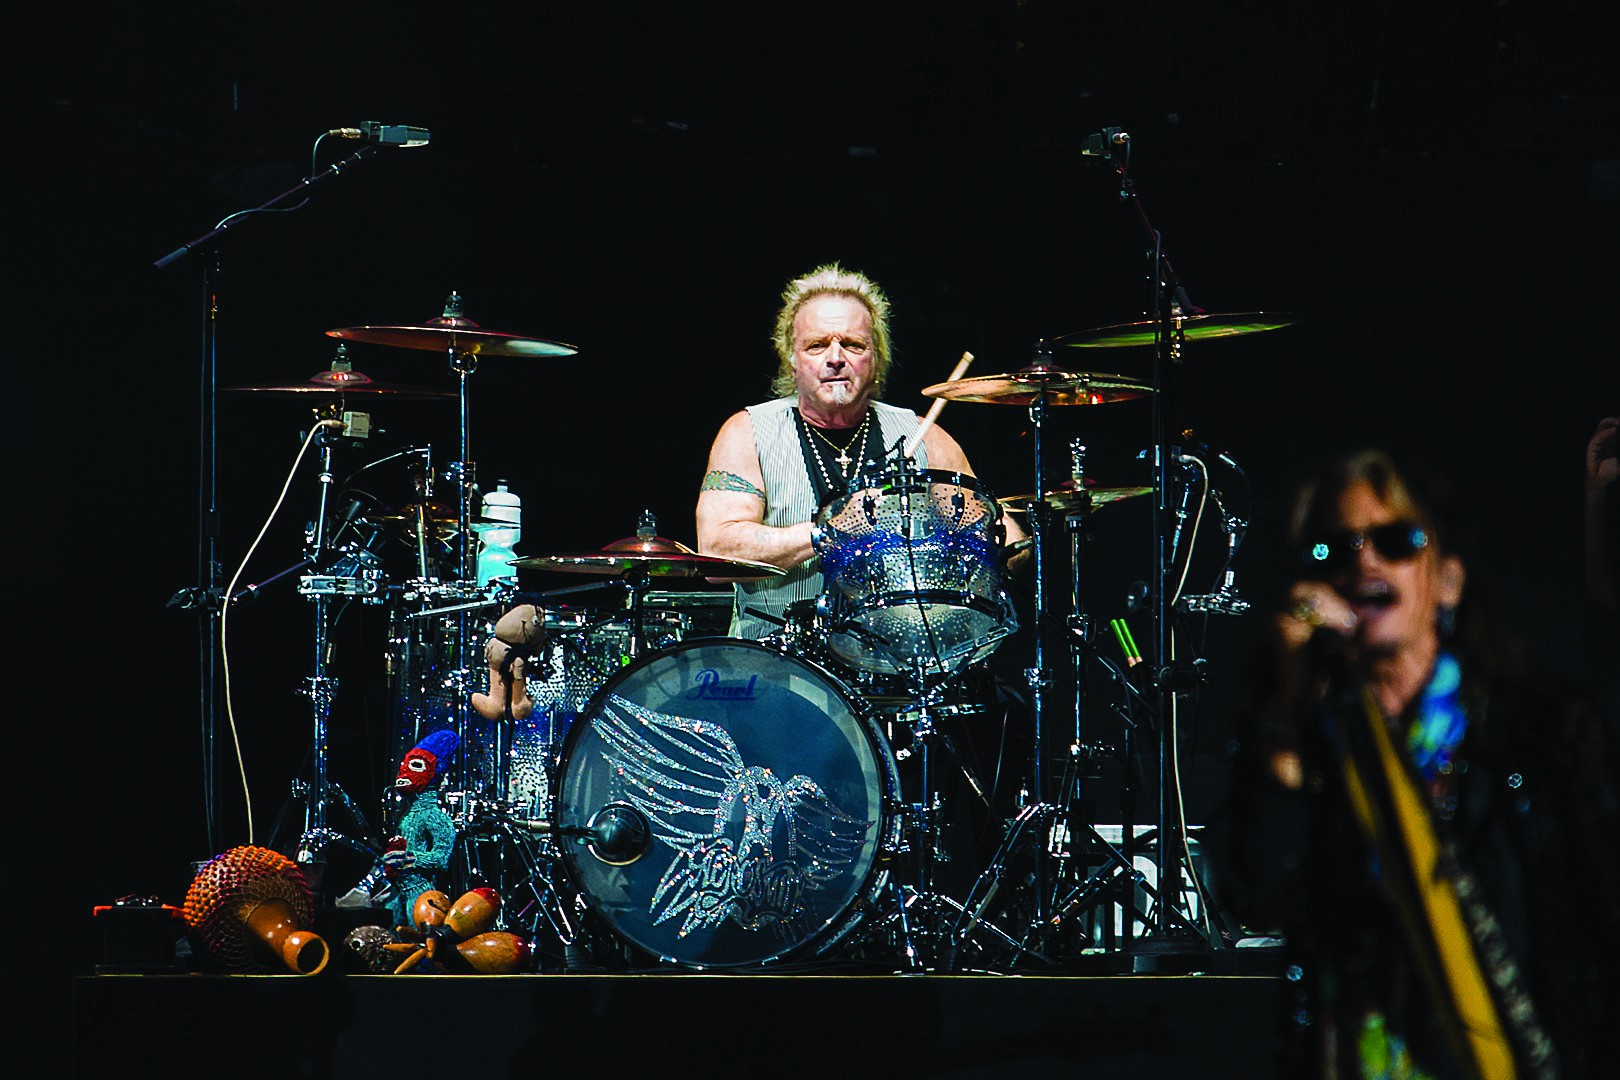 Bobnar Joey kramer se snemanja  albuma Night in the Ruts sploh ne spomni